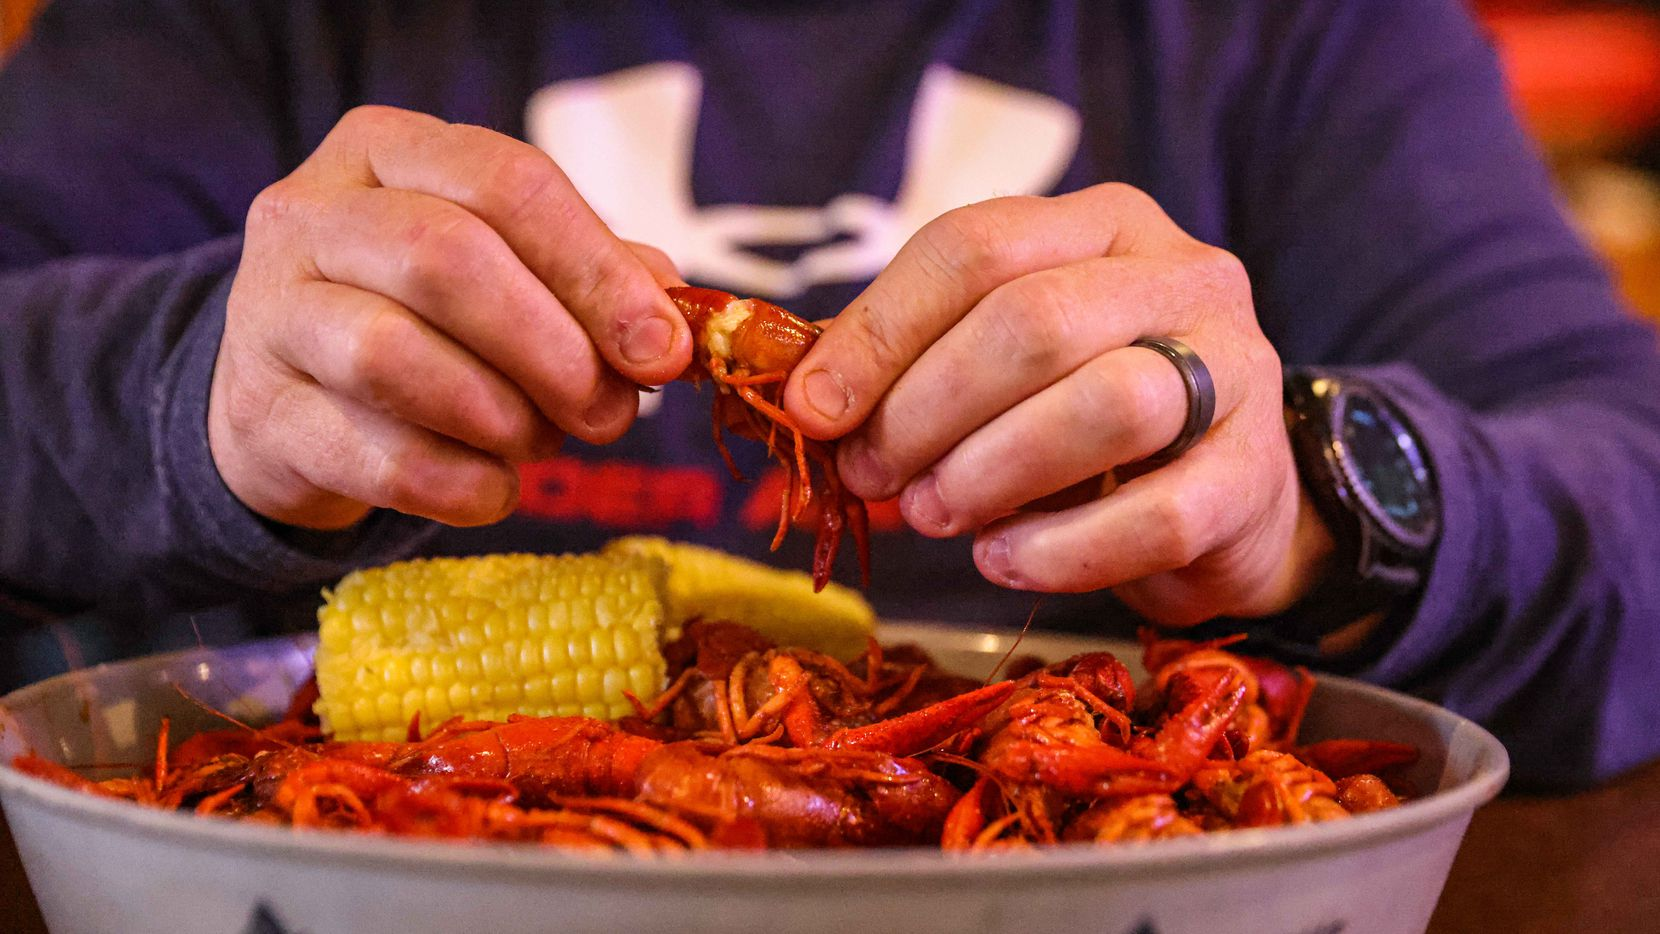 James Freeman removes crawfish meat from its shell during lunch at Big Fish Seafood Grill & Bar in Grapevine. Crawfish is available at nearly every seafood restaurant in Dallas-Fort Worth, but it'll be a strange season because of the coronavirus pandemic.